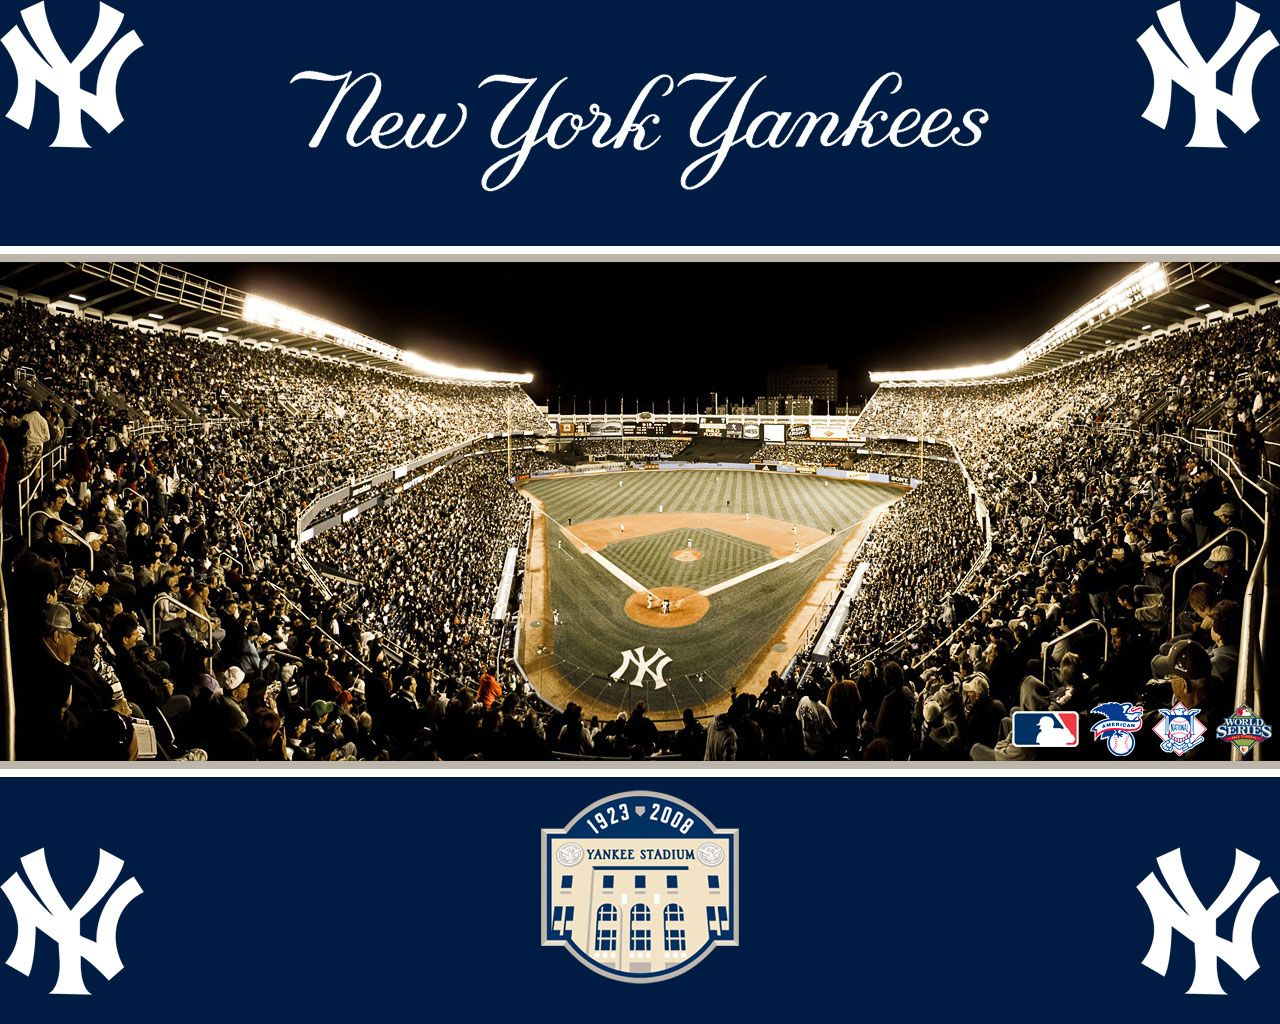 Google image result for httparts wallpaperssportsnew ny yankees stadium i totally want to go to ny with babe and see a game with him maybe spend the weekend there as a yankees fan he would probably love voltagebd Choice Image